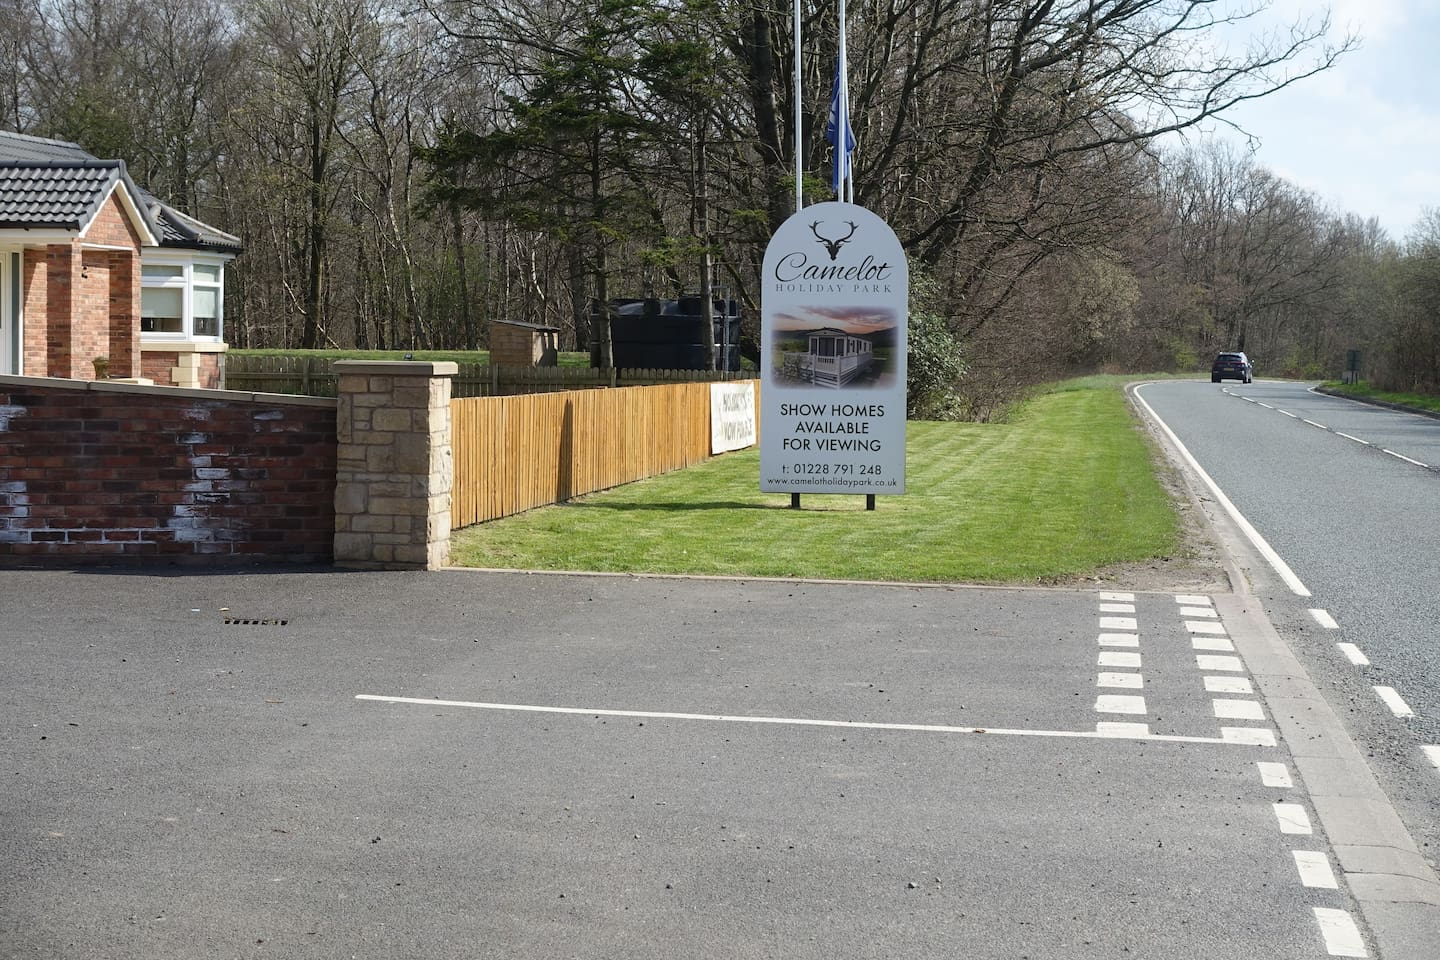 Camelot holiday park. Located by the A7 .Handy for the lake district & the scottish borders.